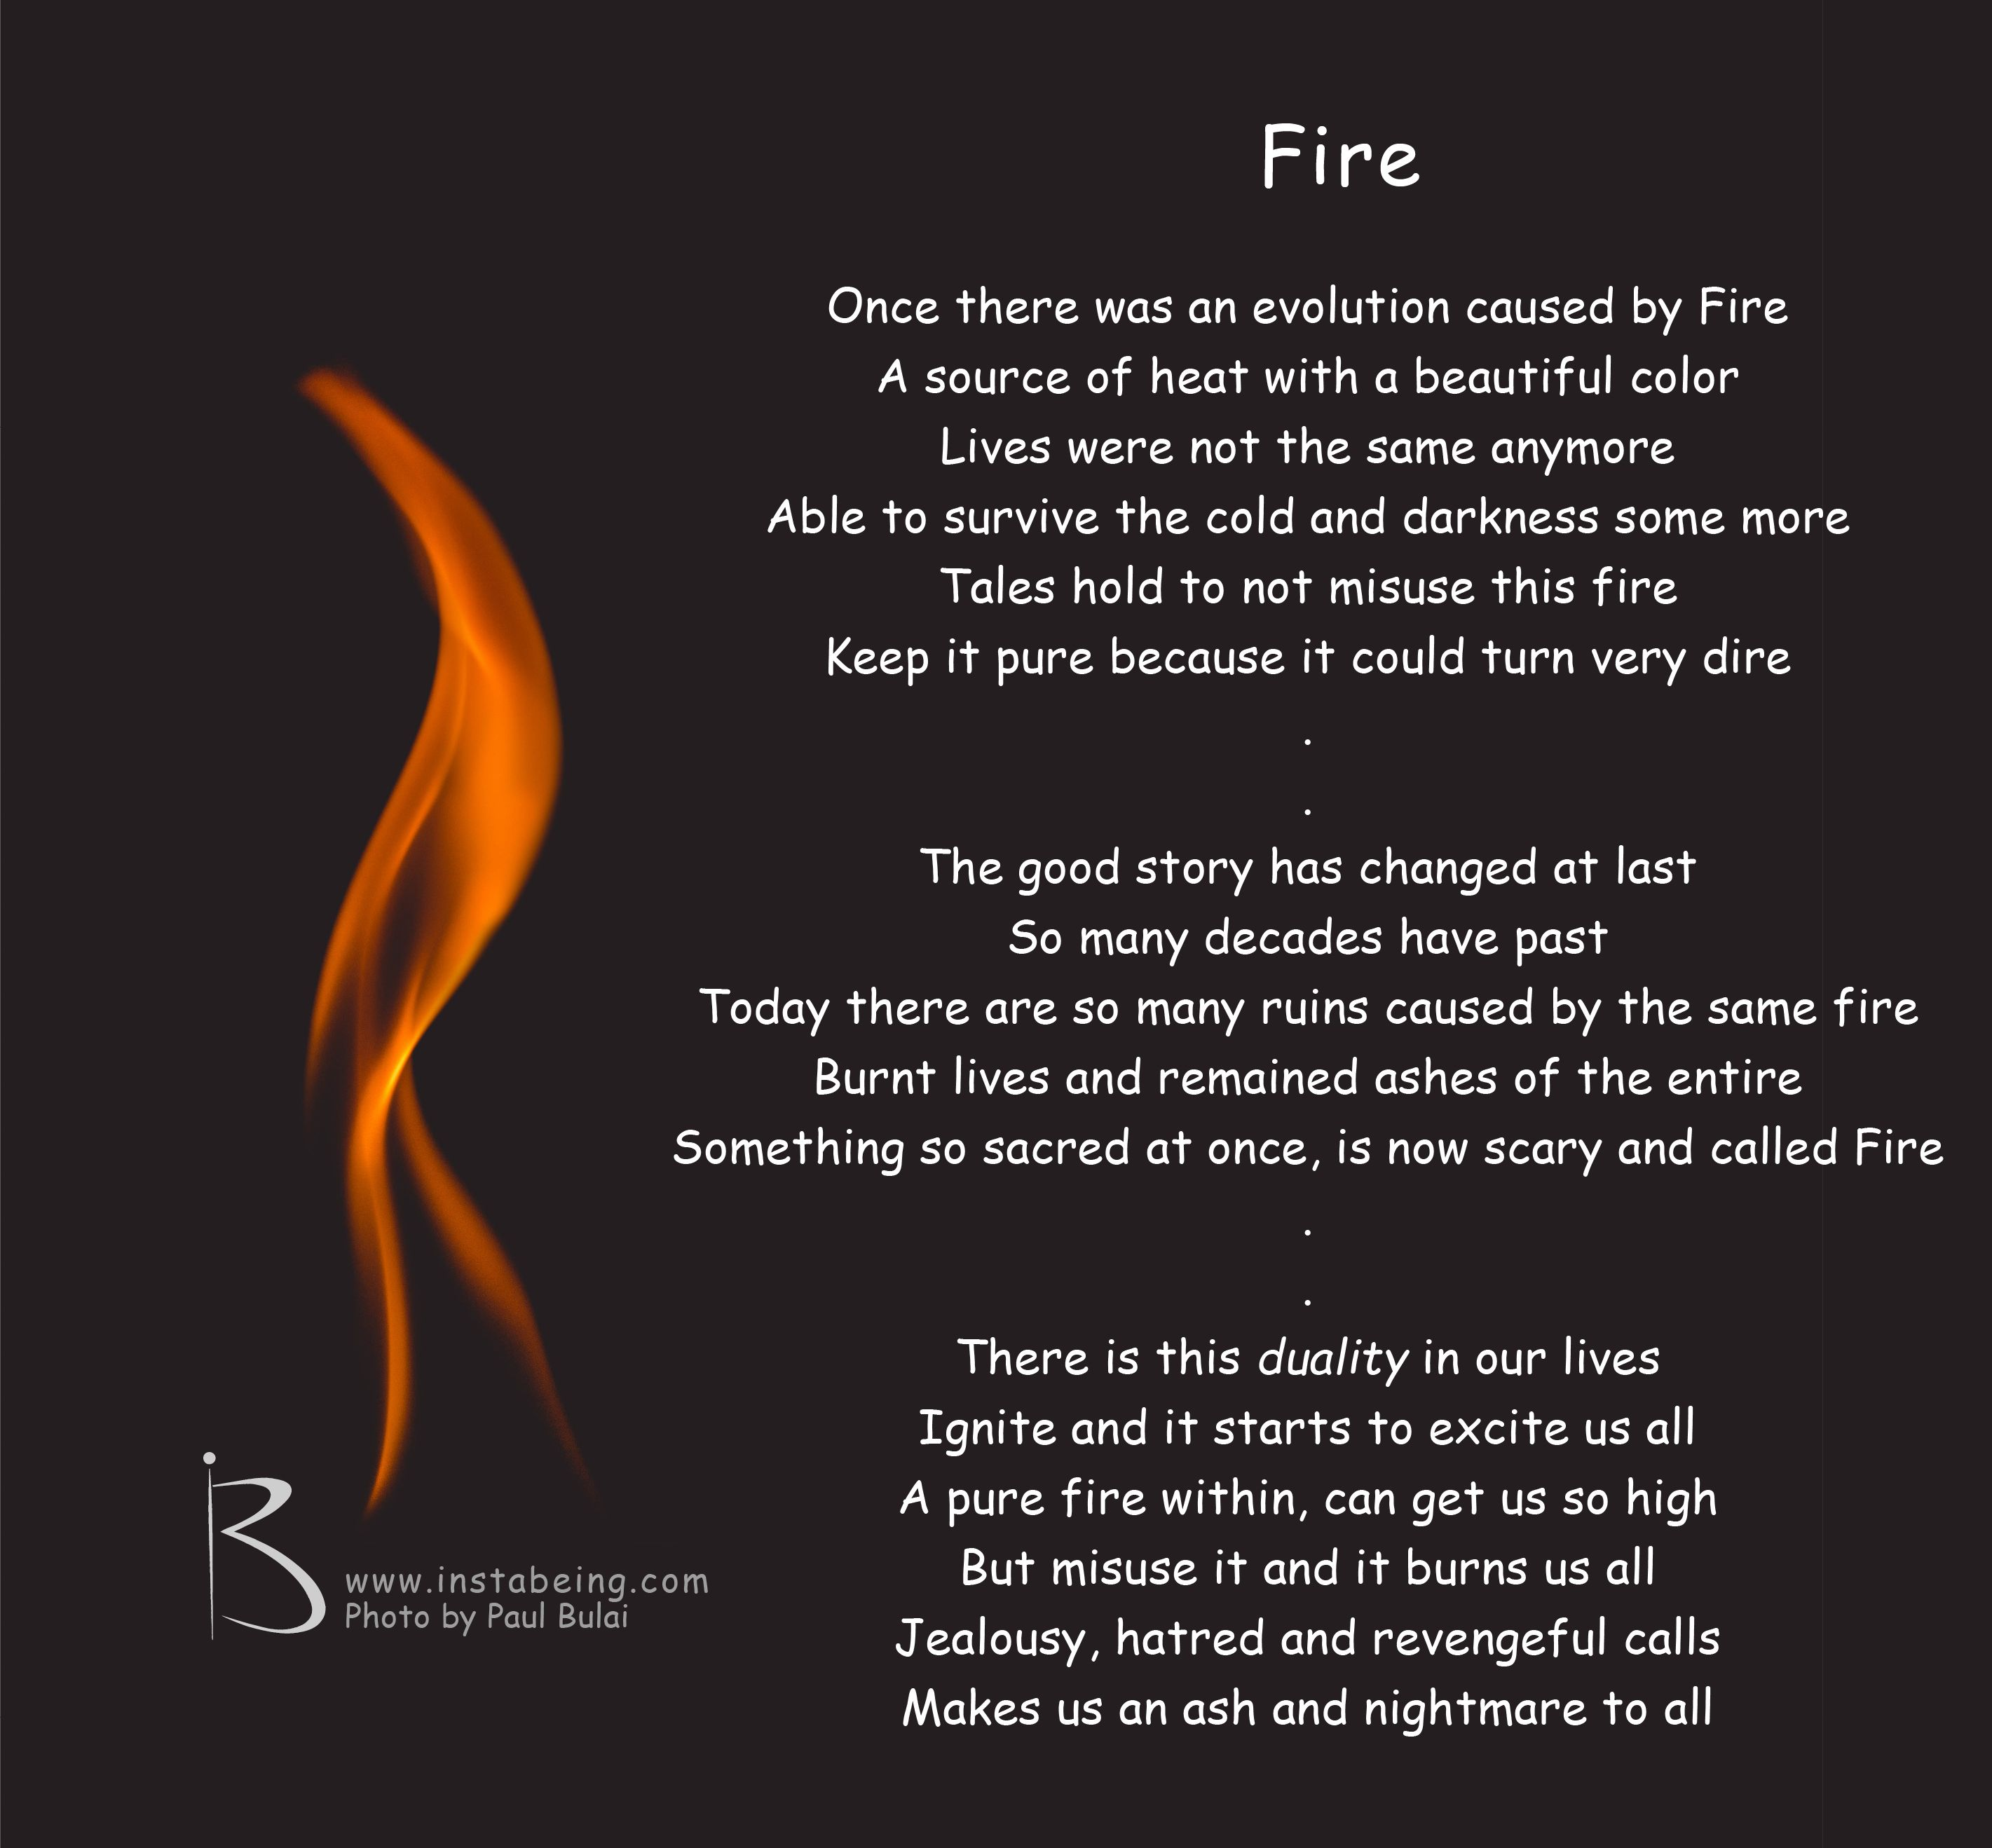 Fire With Images Fire Poem Sources Of Heat Fire